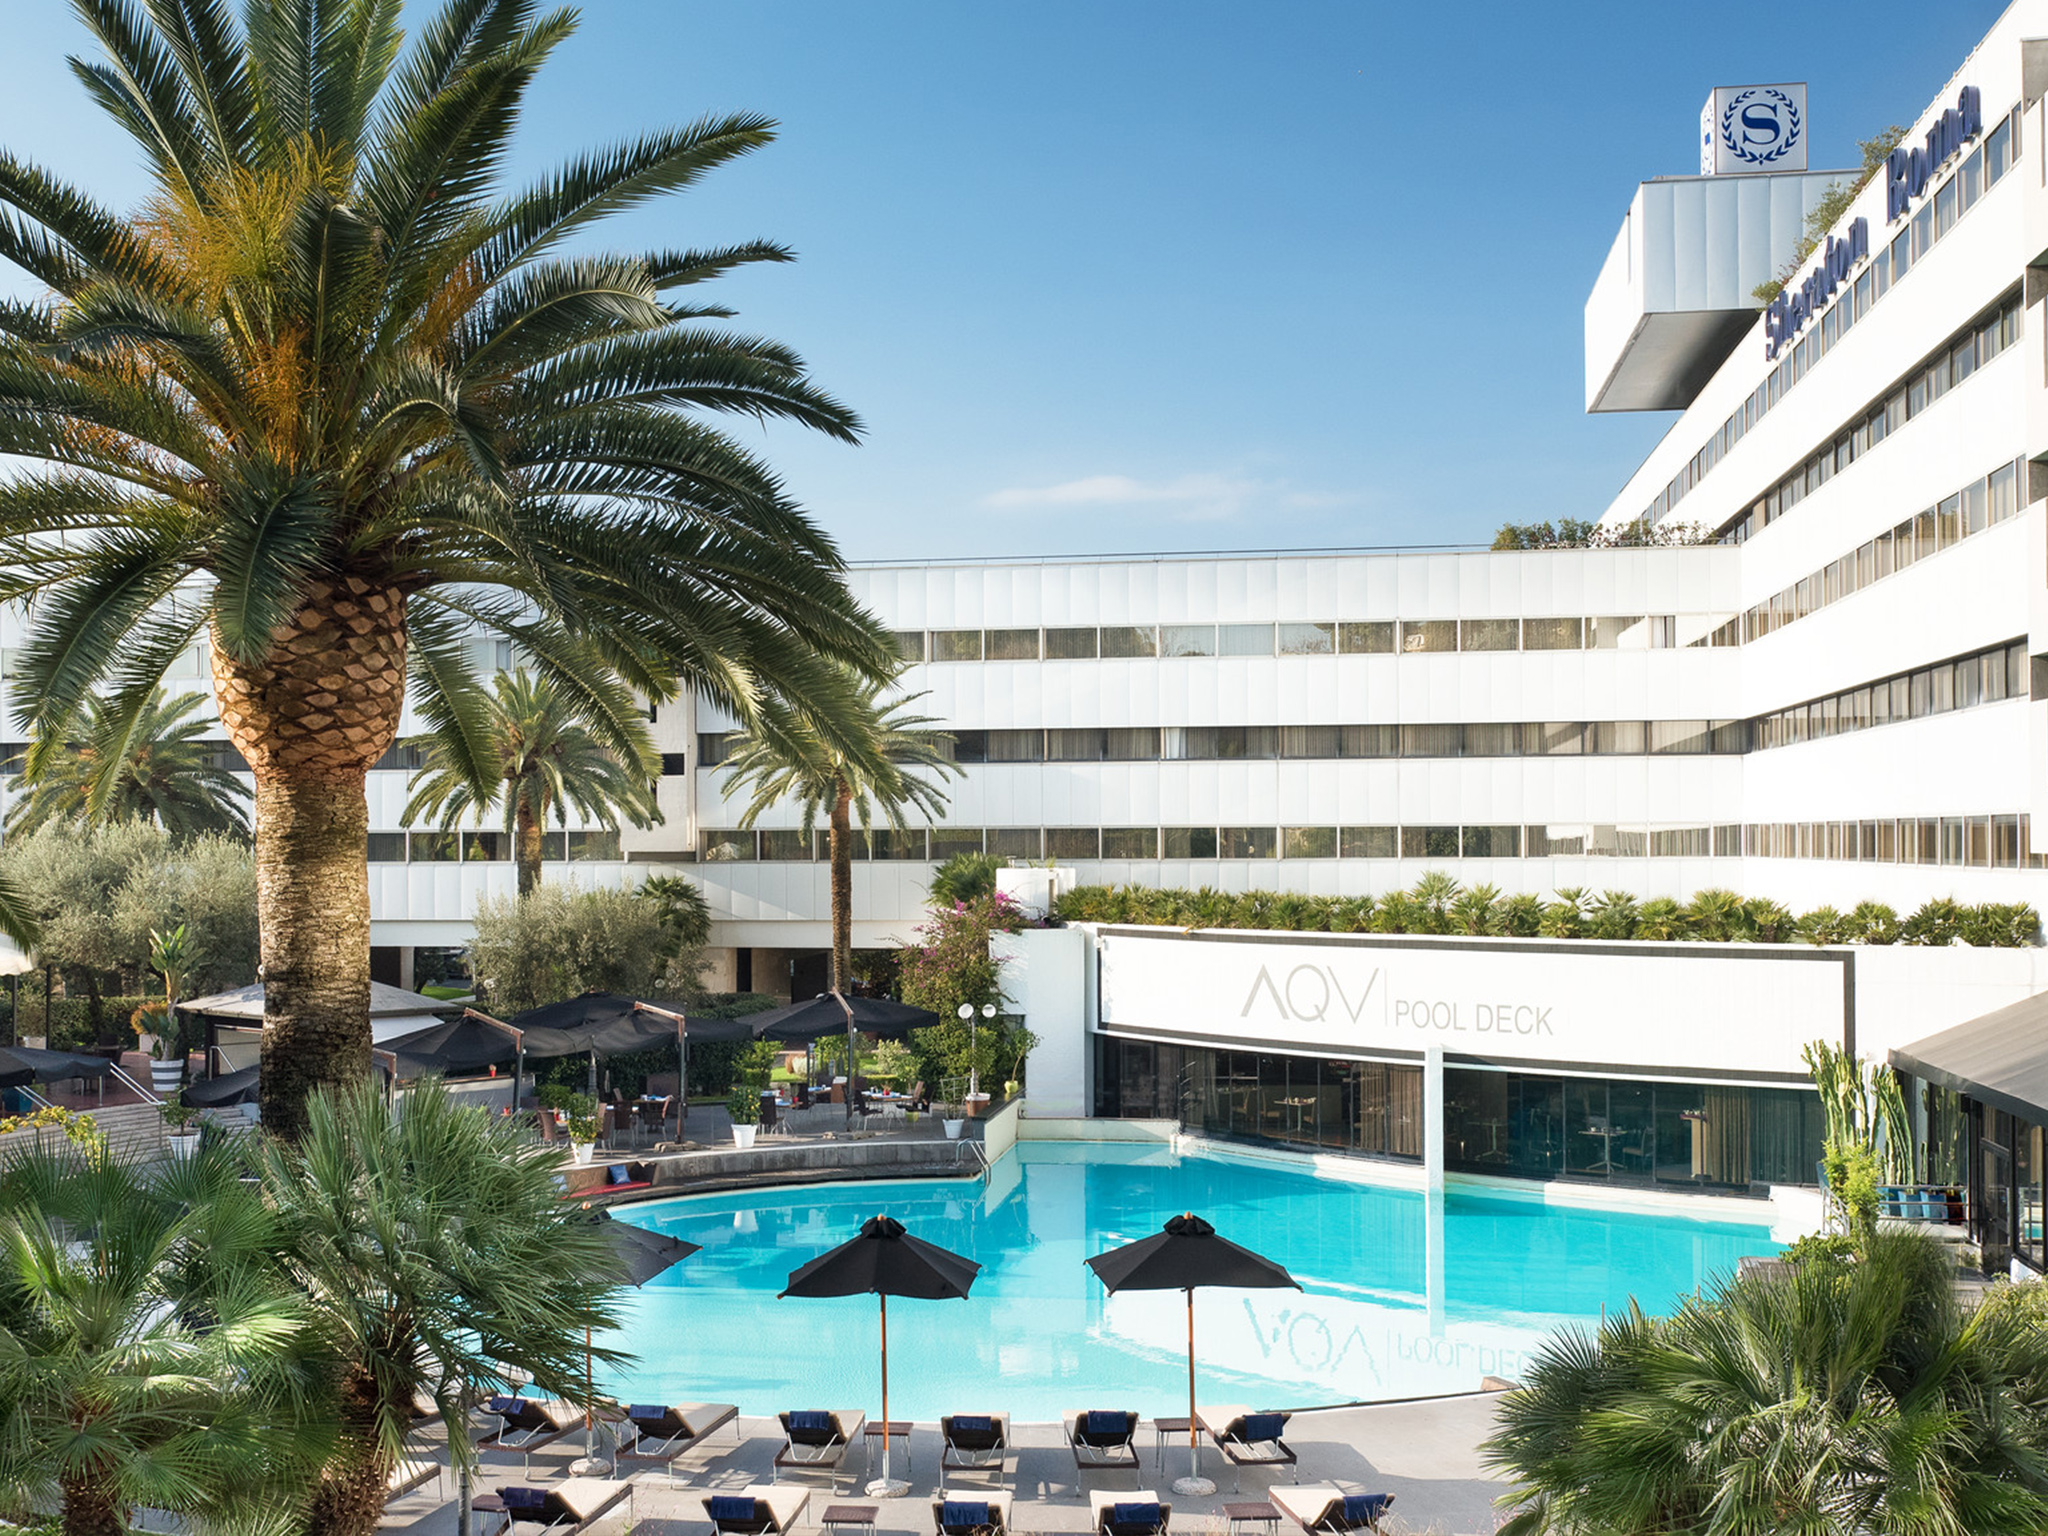 Sheraton Roma Hotel & Conference Center, Official website